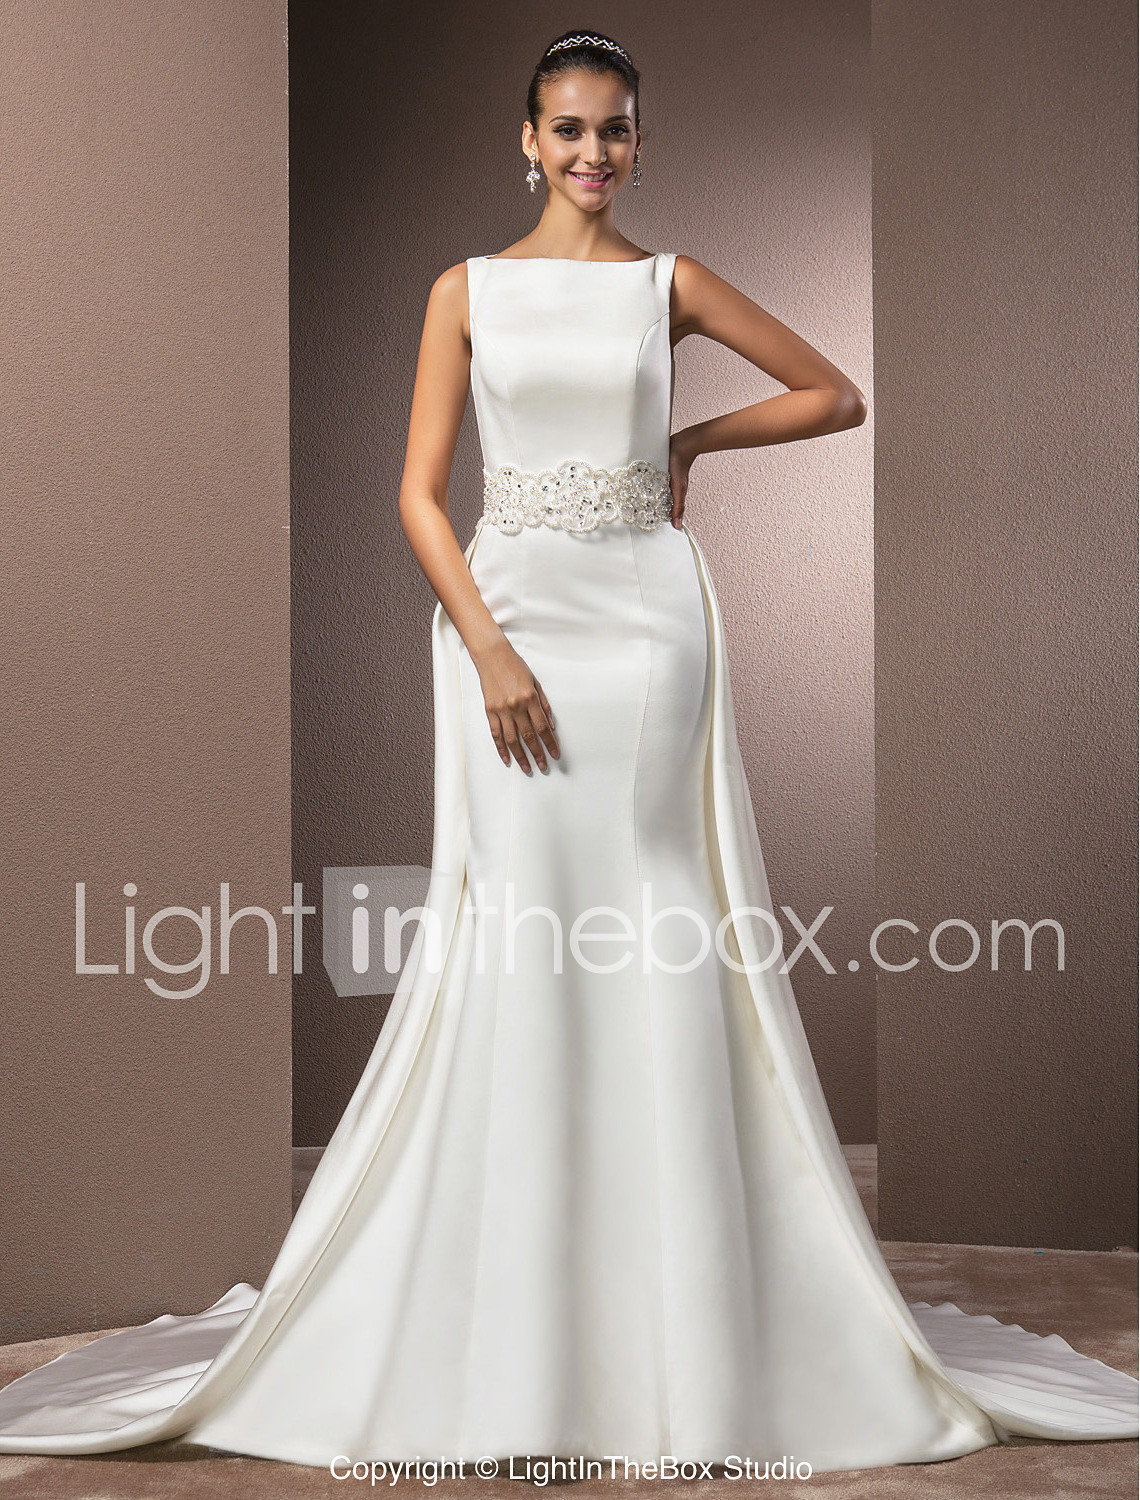 Mermaid Trumpet Bateau Neck Cathedral Train Satin Made To Measure Wedding Dresses With